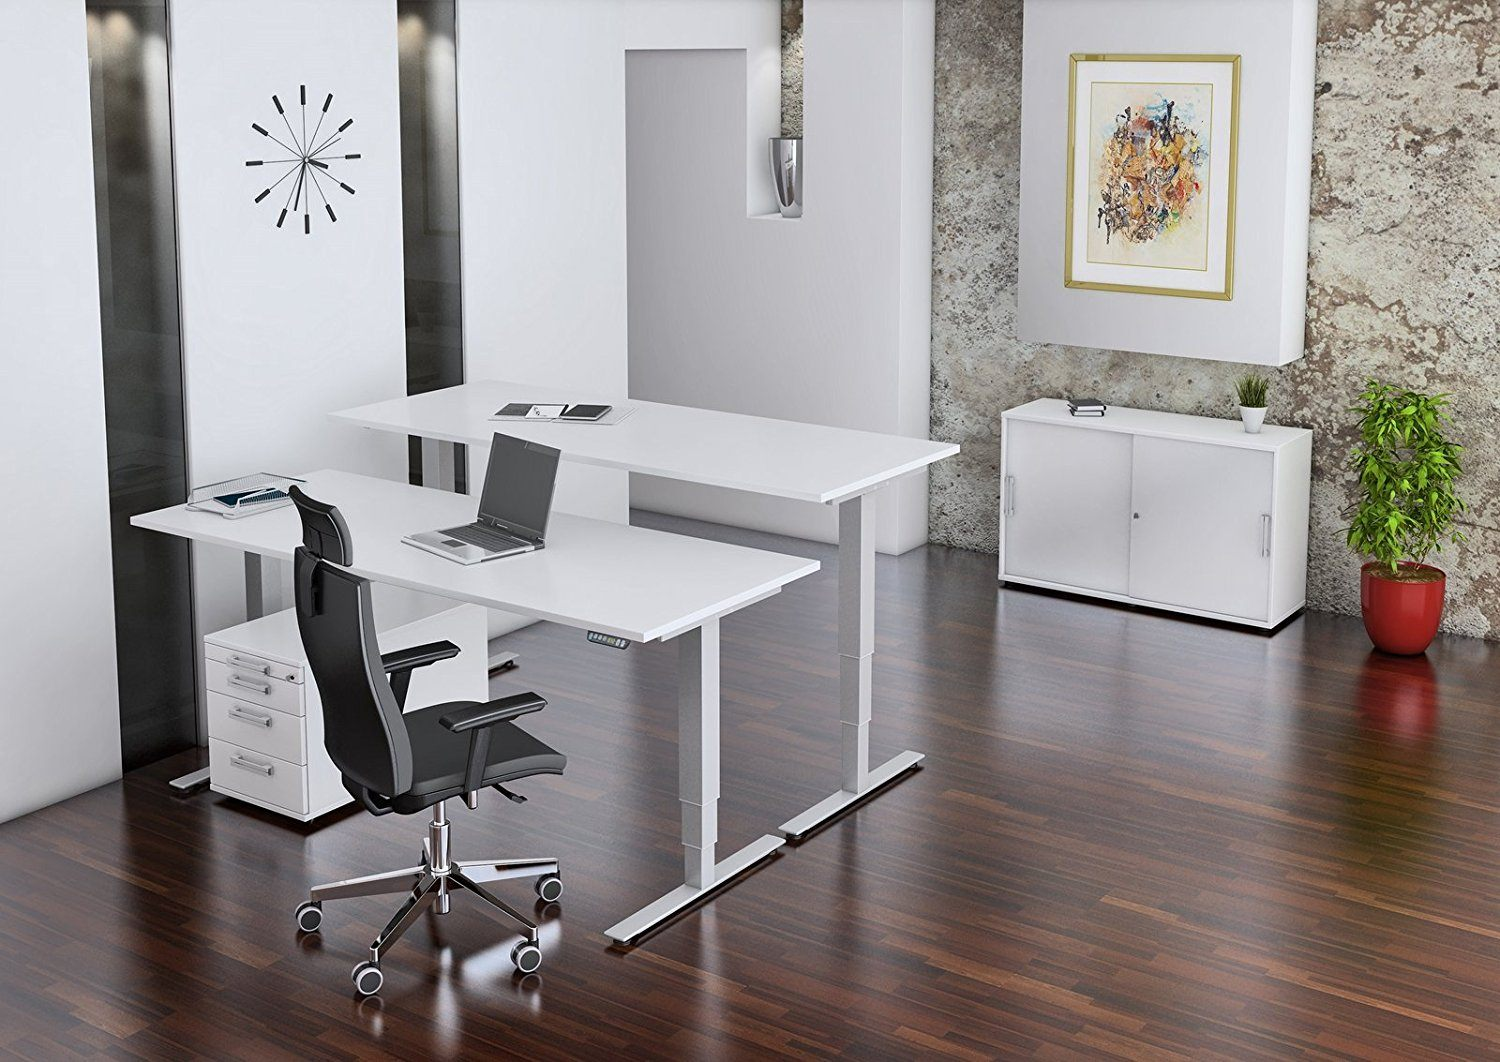 b m ergonomischer schreibtisch mit elektrischer h henverstellung im vergleich expertentesten. Black Bedroom Furniture Sets. Home Design Ideas